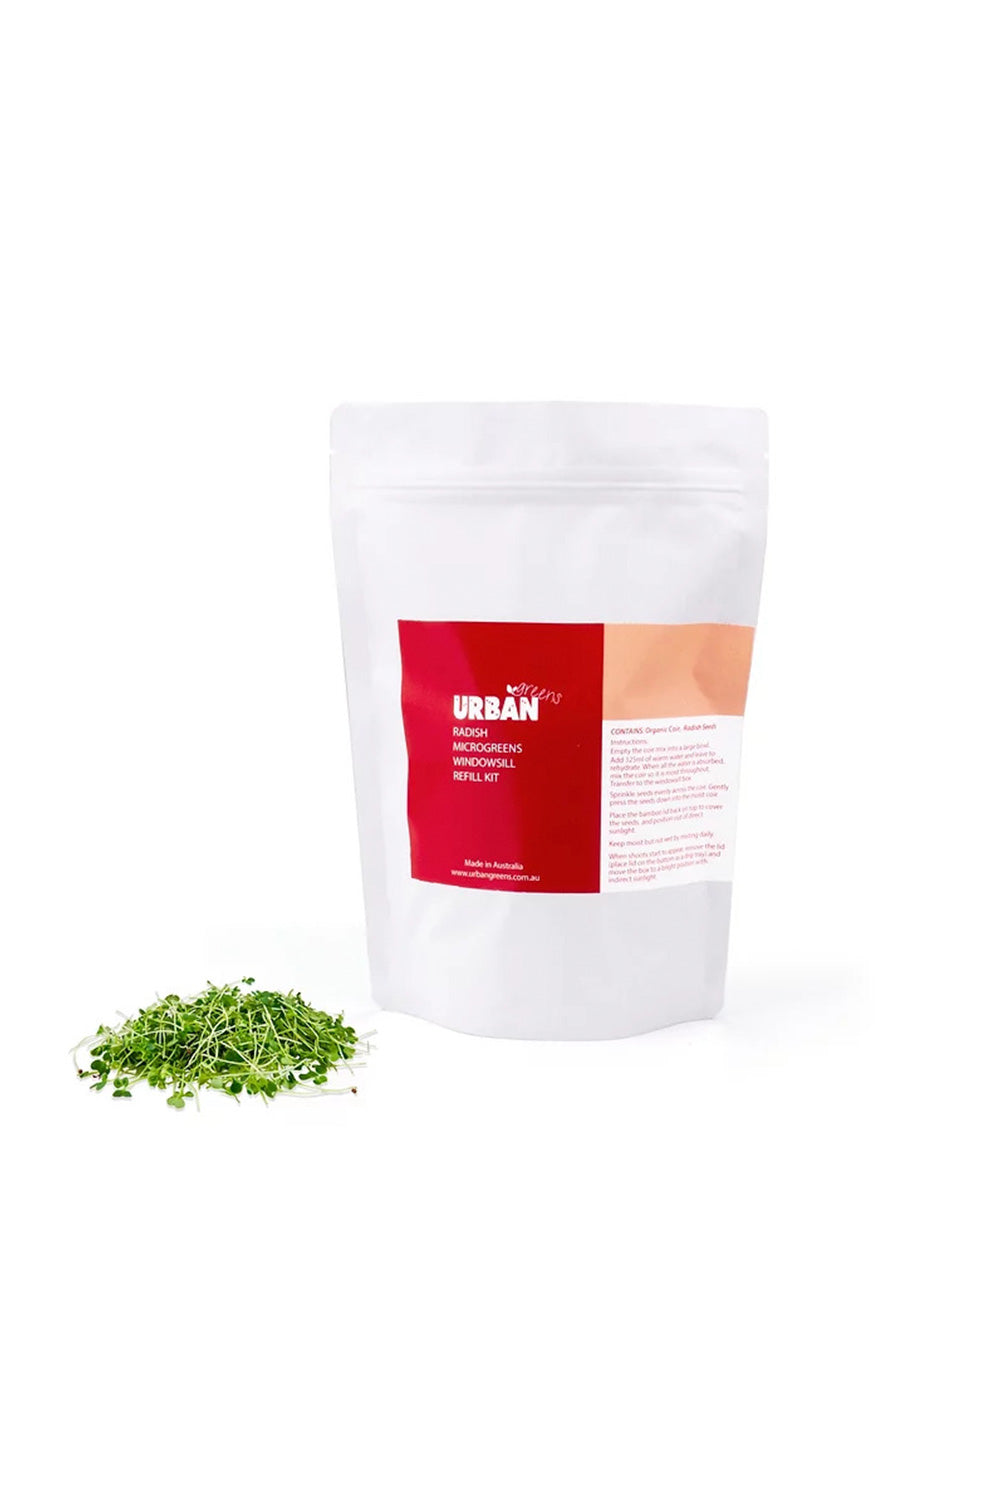 Urban Greens Refill-Radish Seeds - Kabana Shop